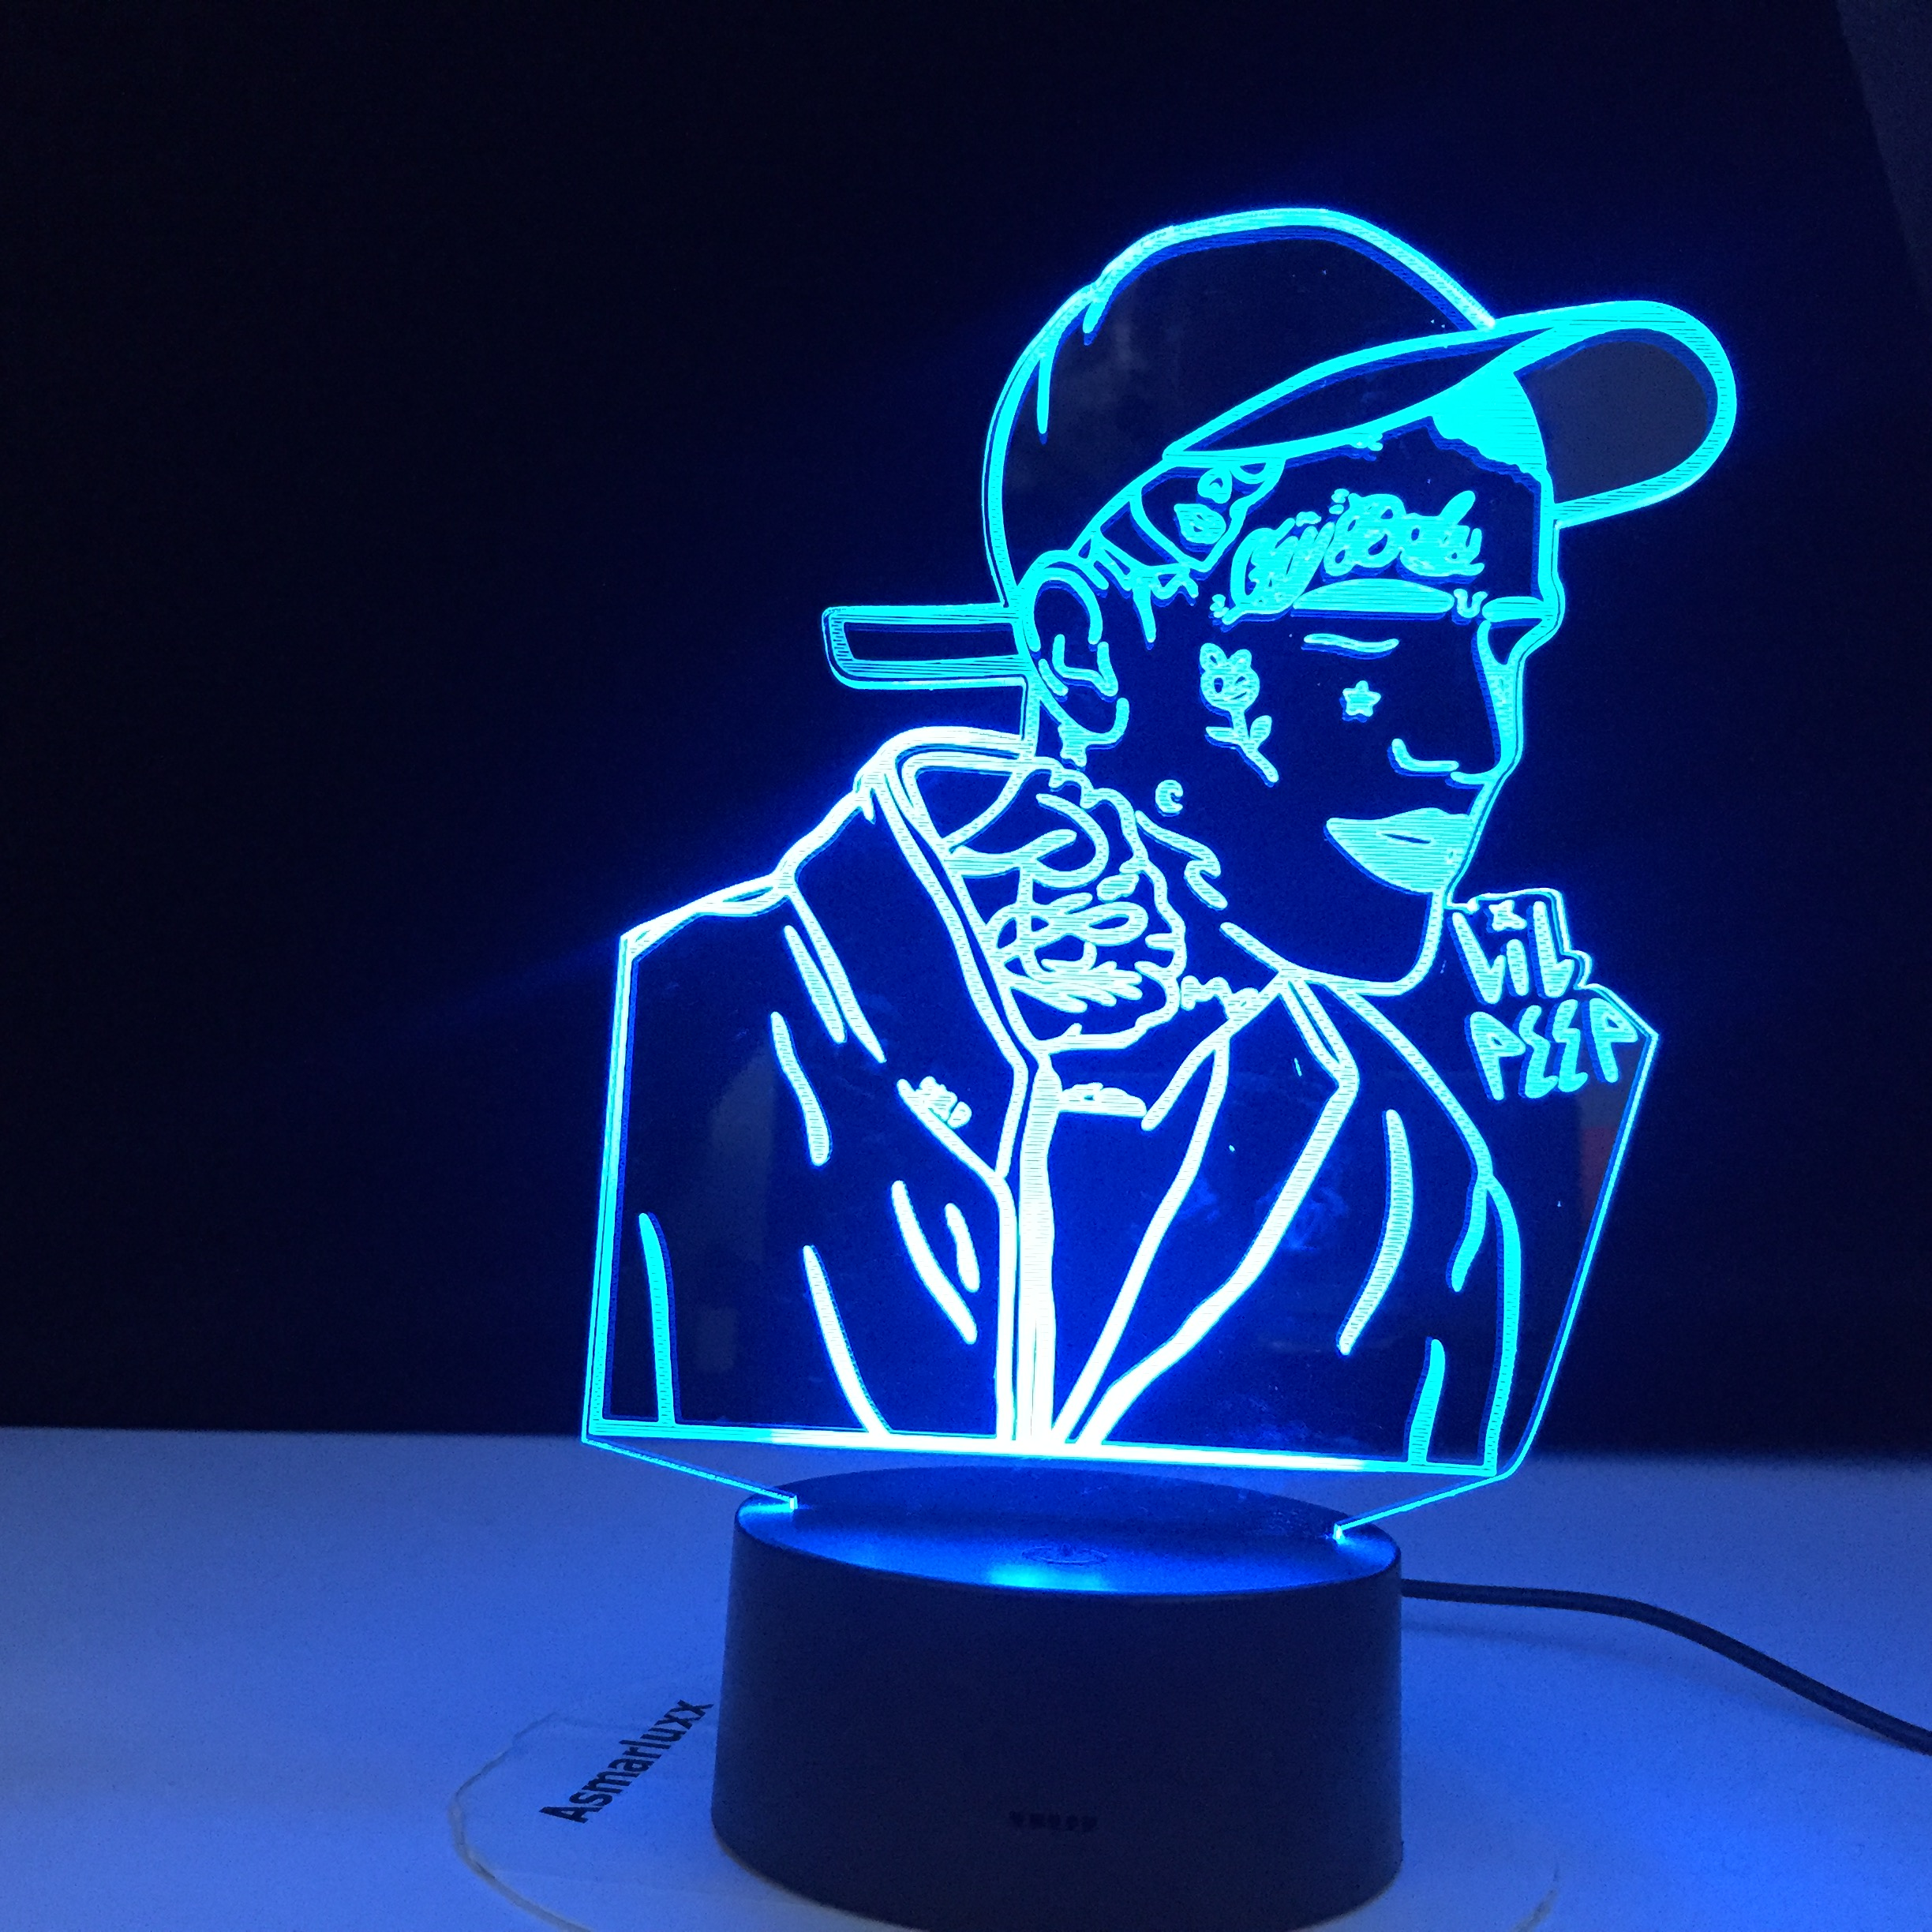 Lil Peep American Rapper 3D Led Night Light For Home Decoration Colorful Celebrity Birthday Party Nightlight Gift For Fans